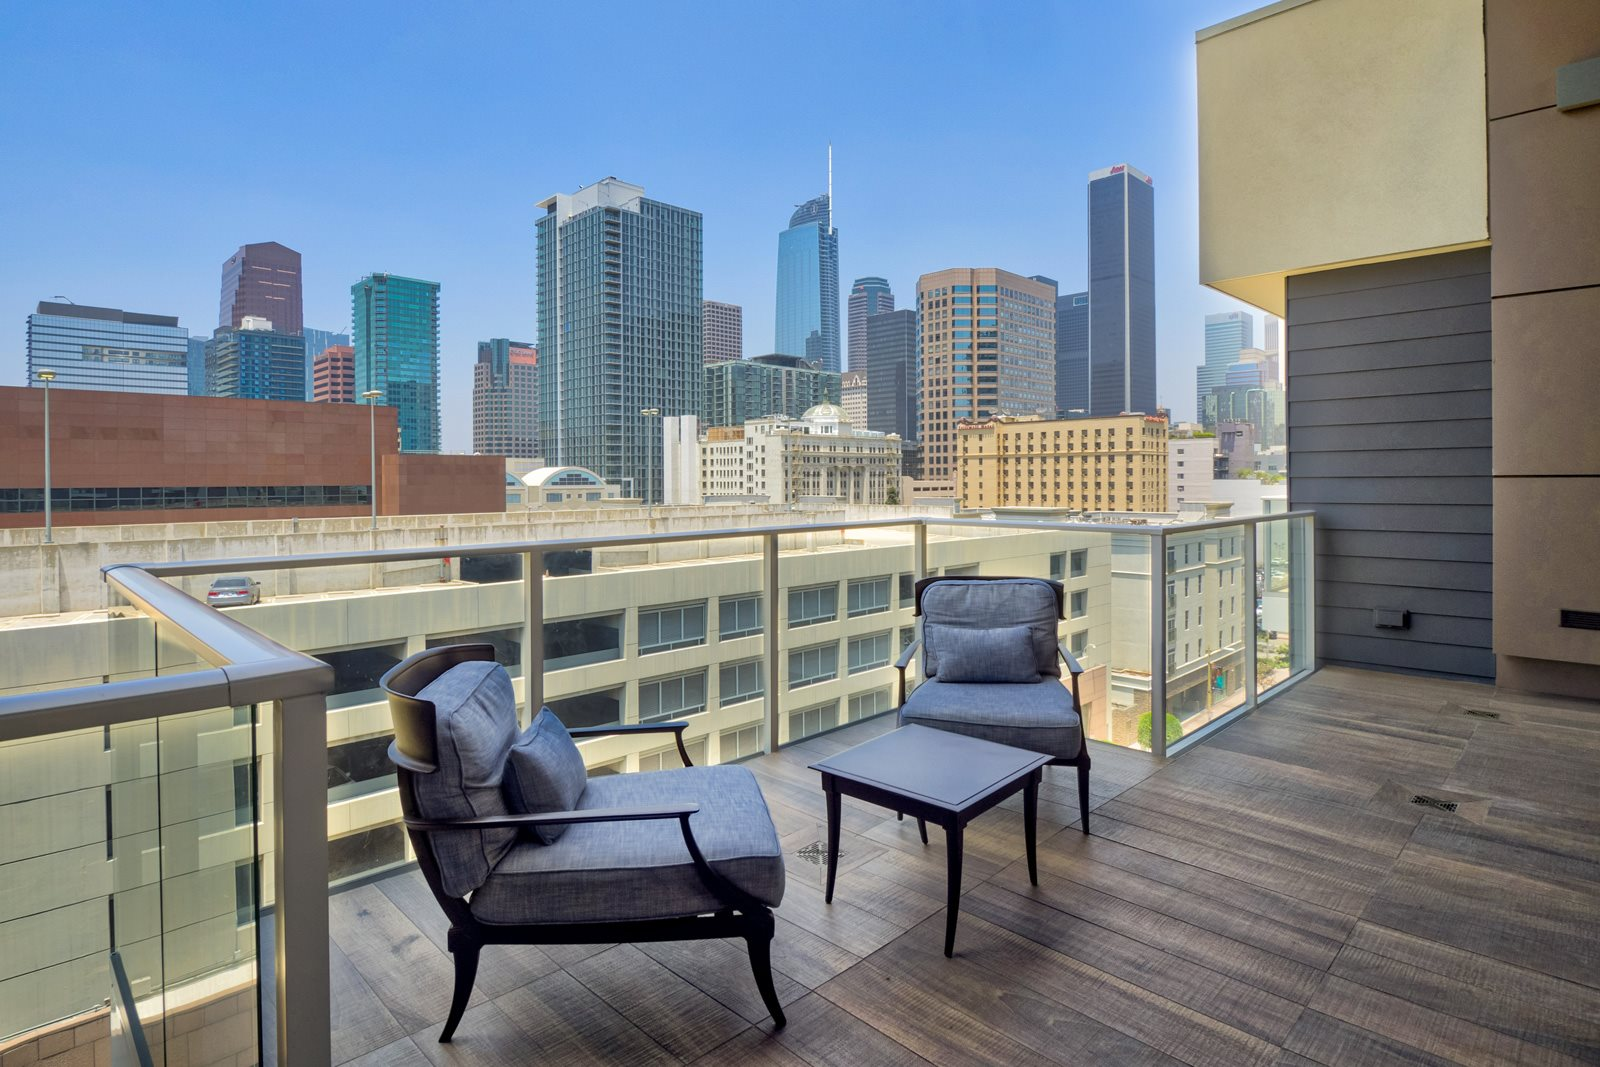 Rooftop Sundecks with Gorgeous Views  at Olympic by Windsor, California, 90015